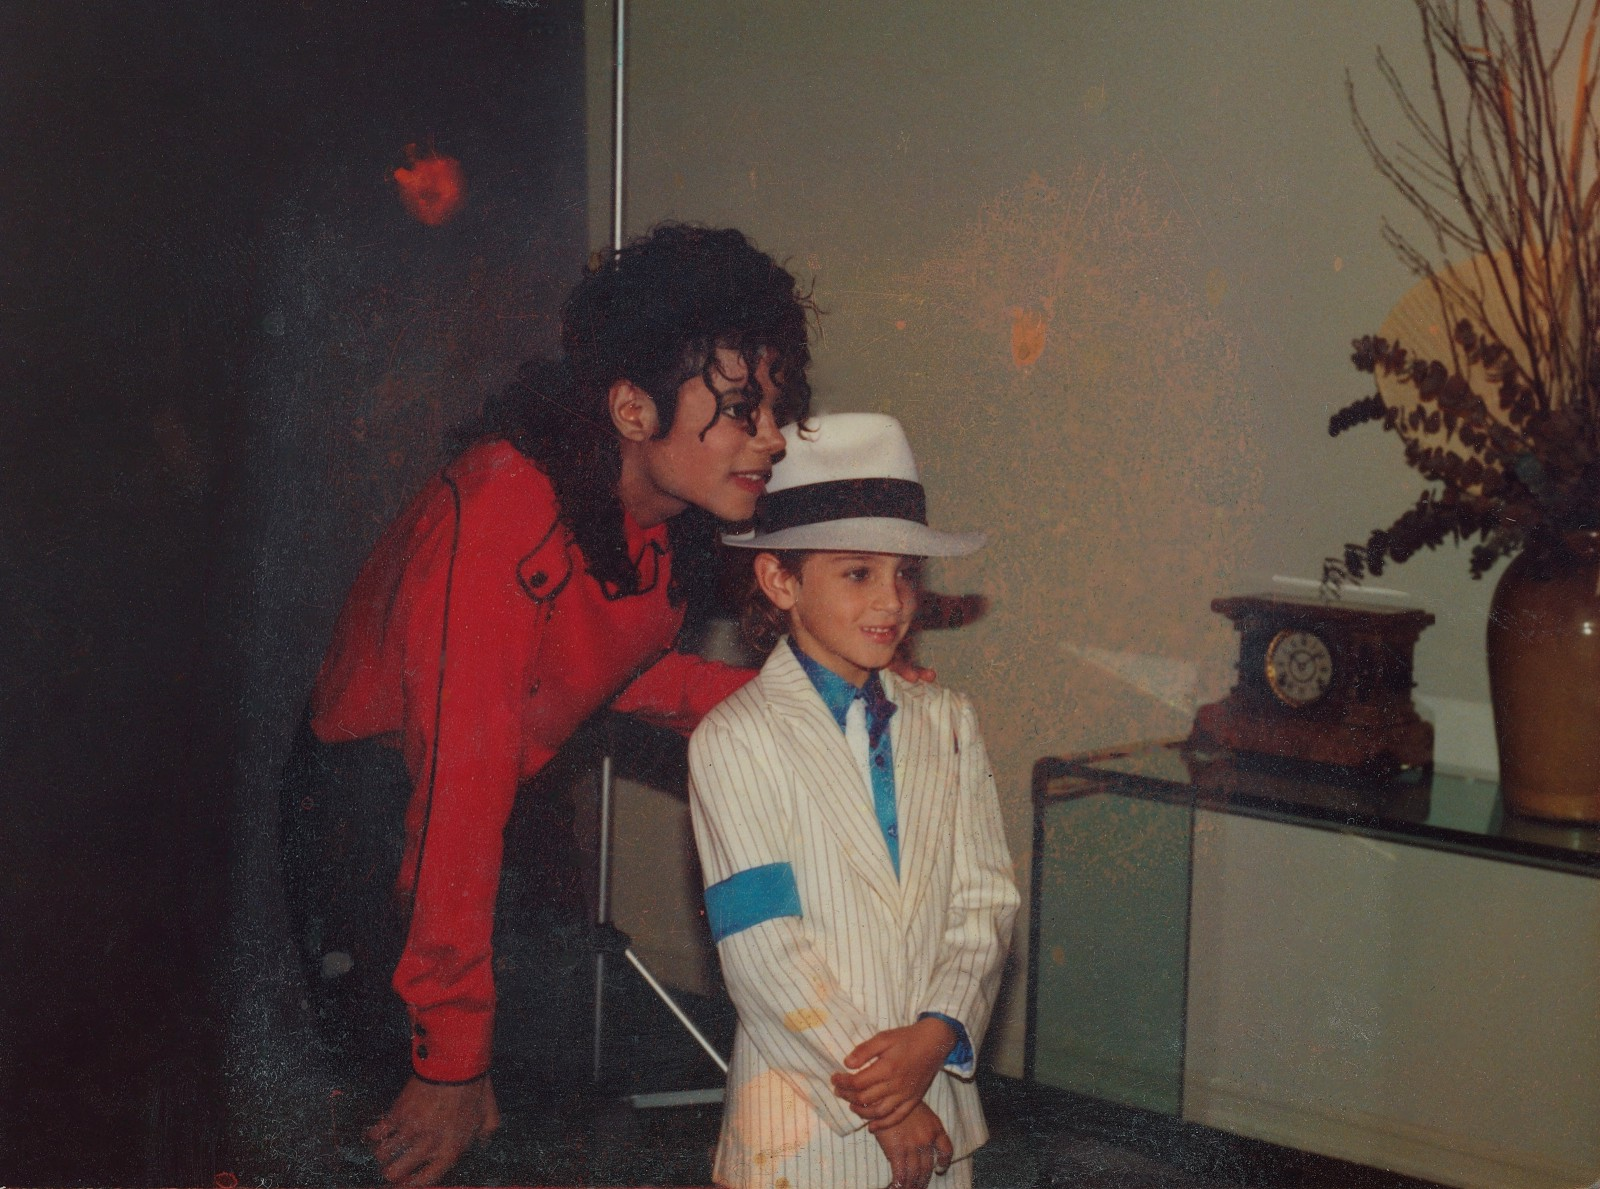 DStv to air controversial Leaving Neverland documentary this weekend on M-Net City - Brand Spur